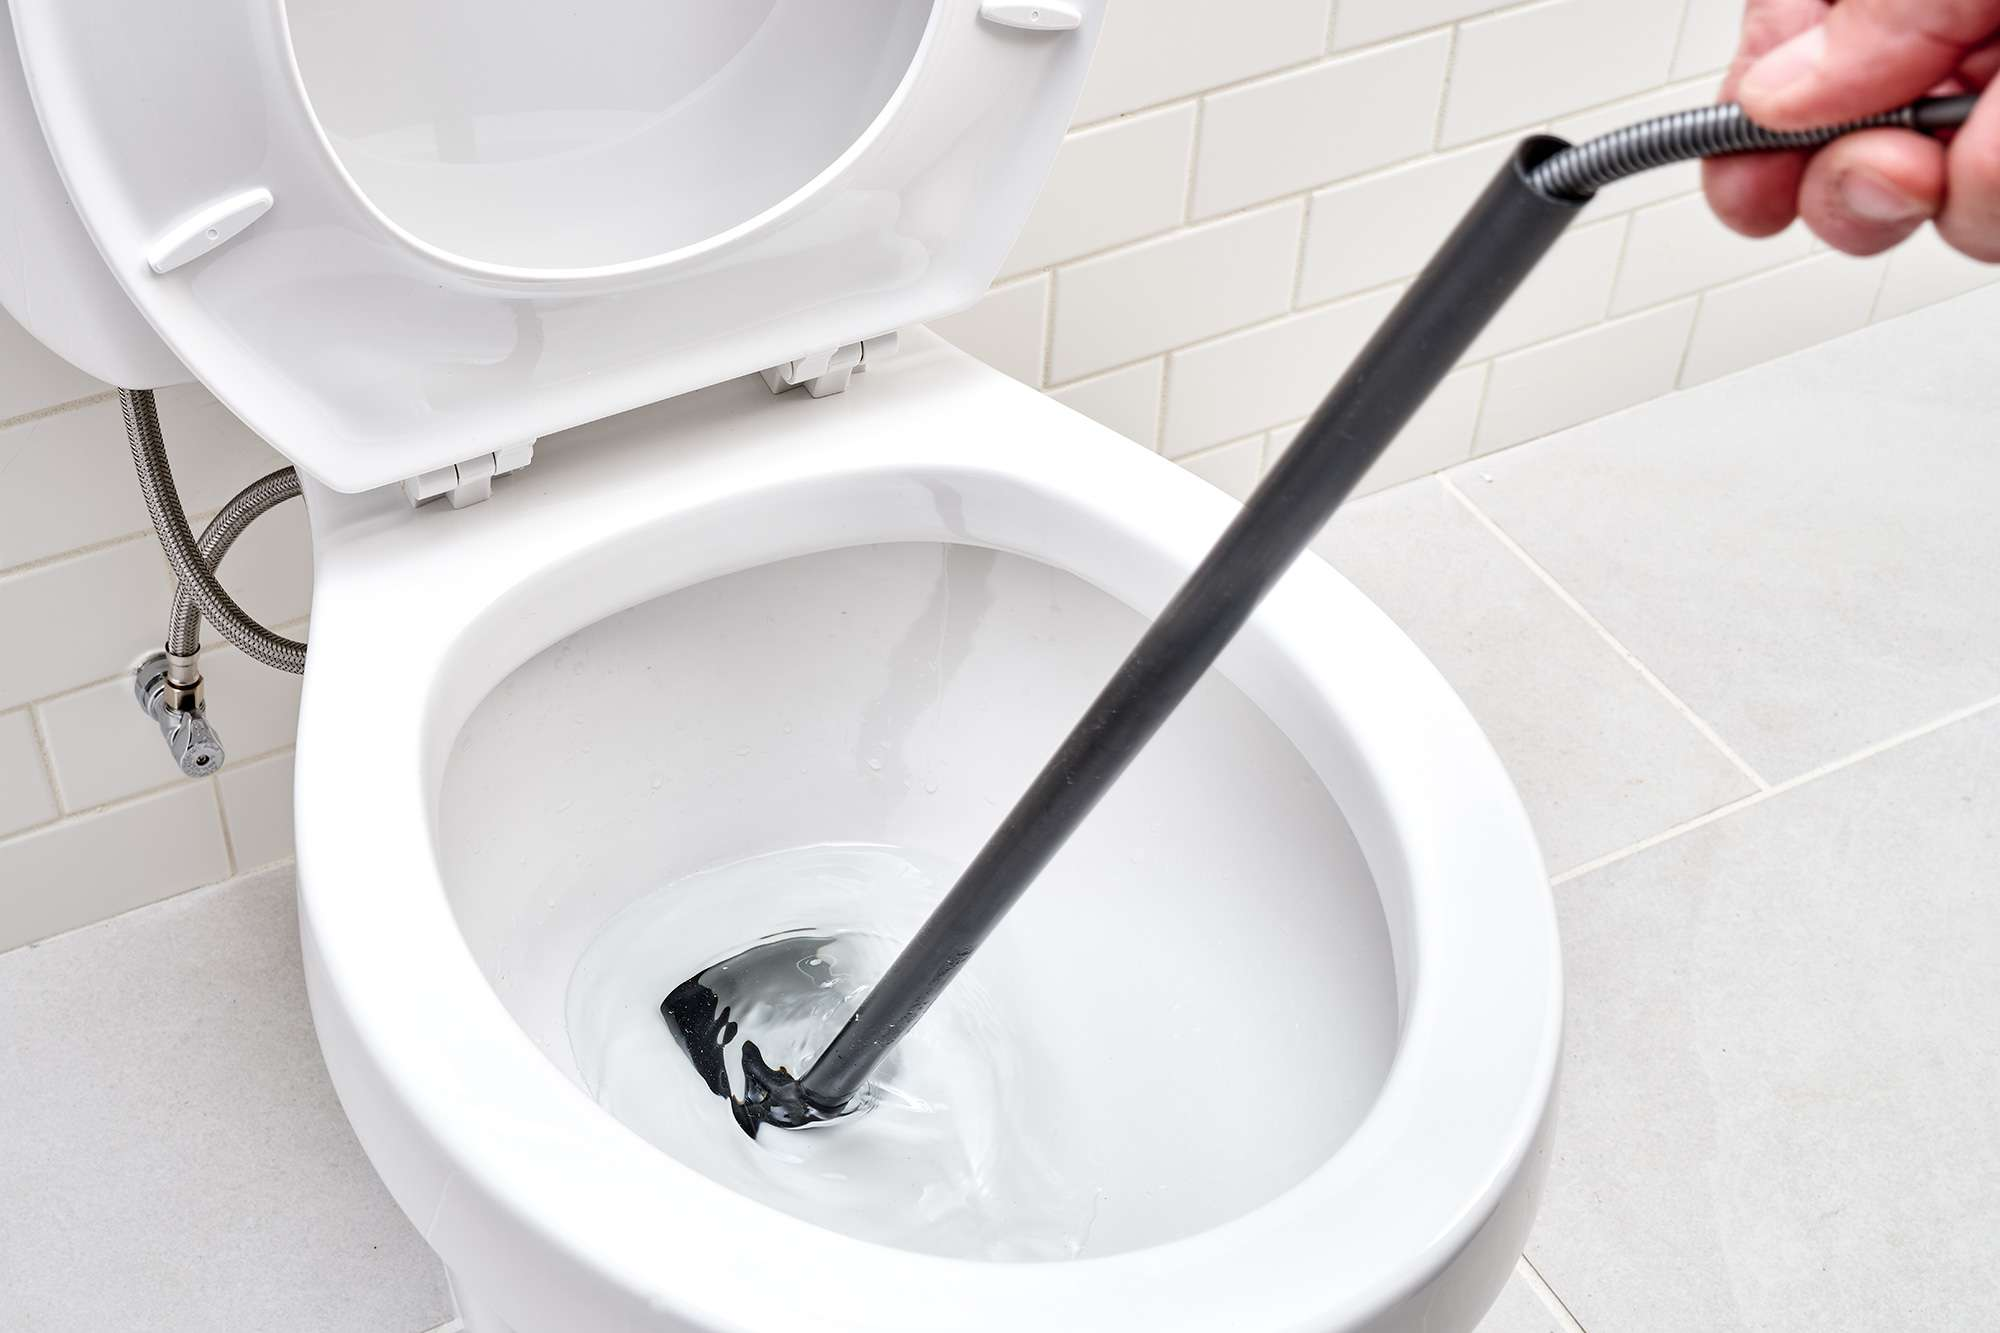 Toilet auger cable pulled back to repeat pushing action